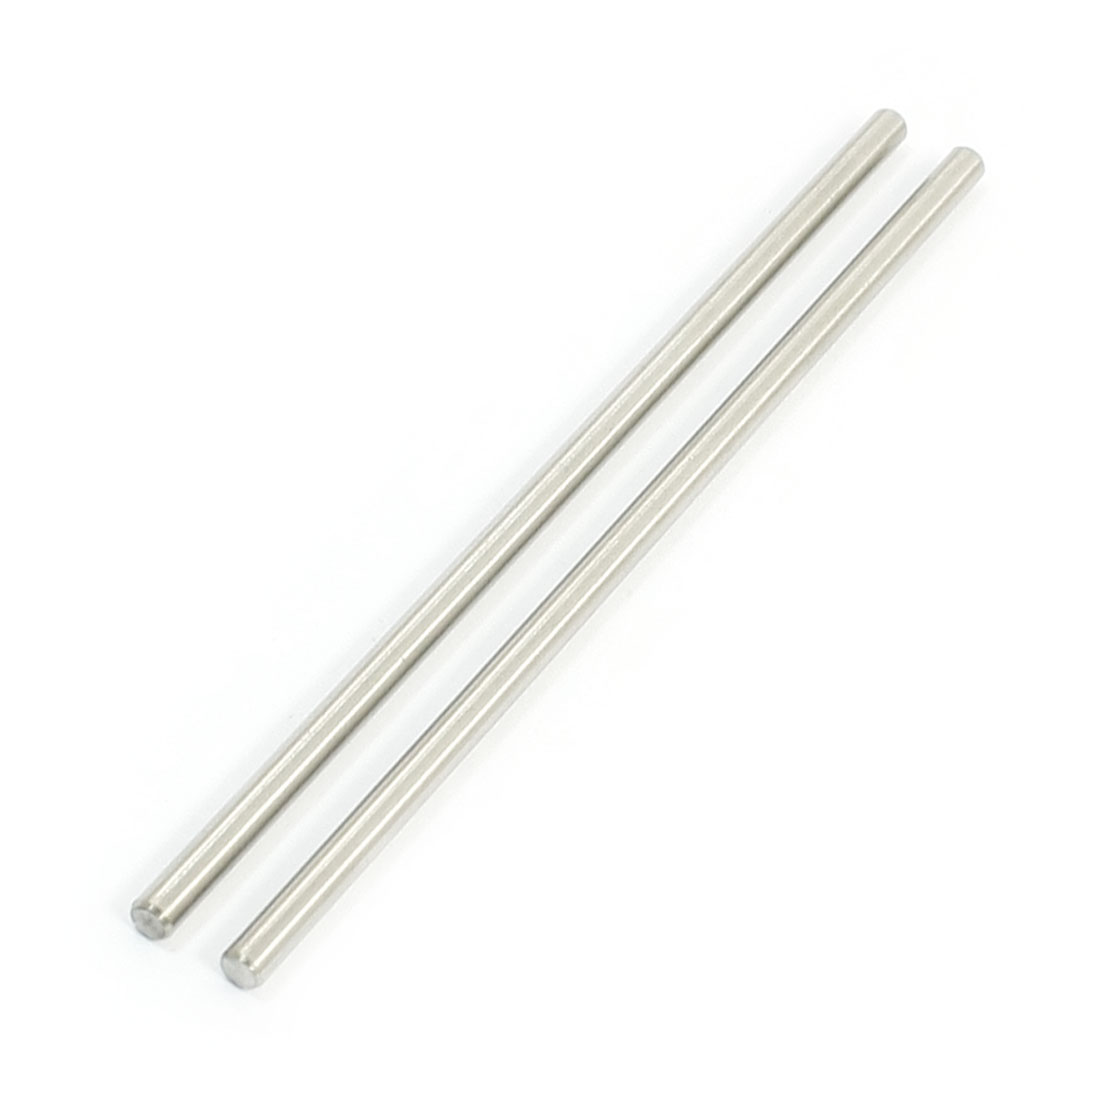 "2Pcs 3mm Diameter Stainless Steel Motion Axle Circular Round Rod Bar 3.5"" Long"